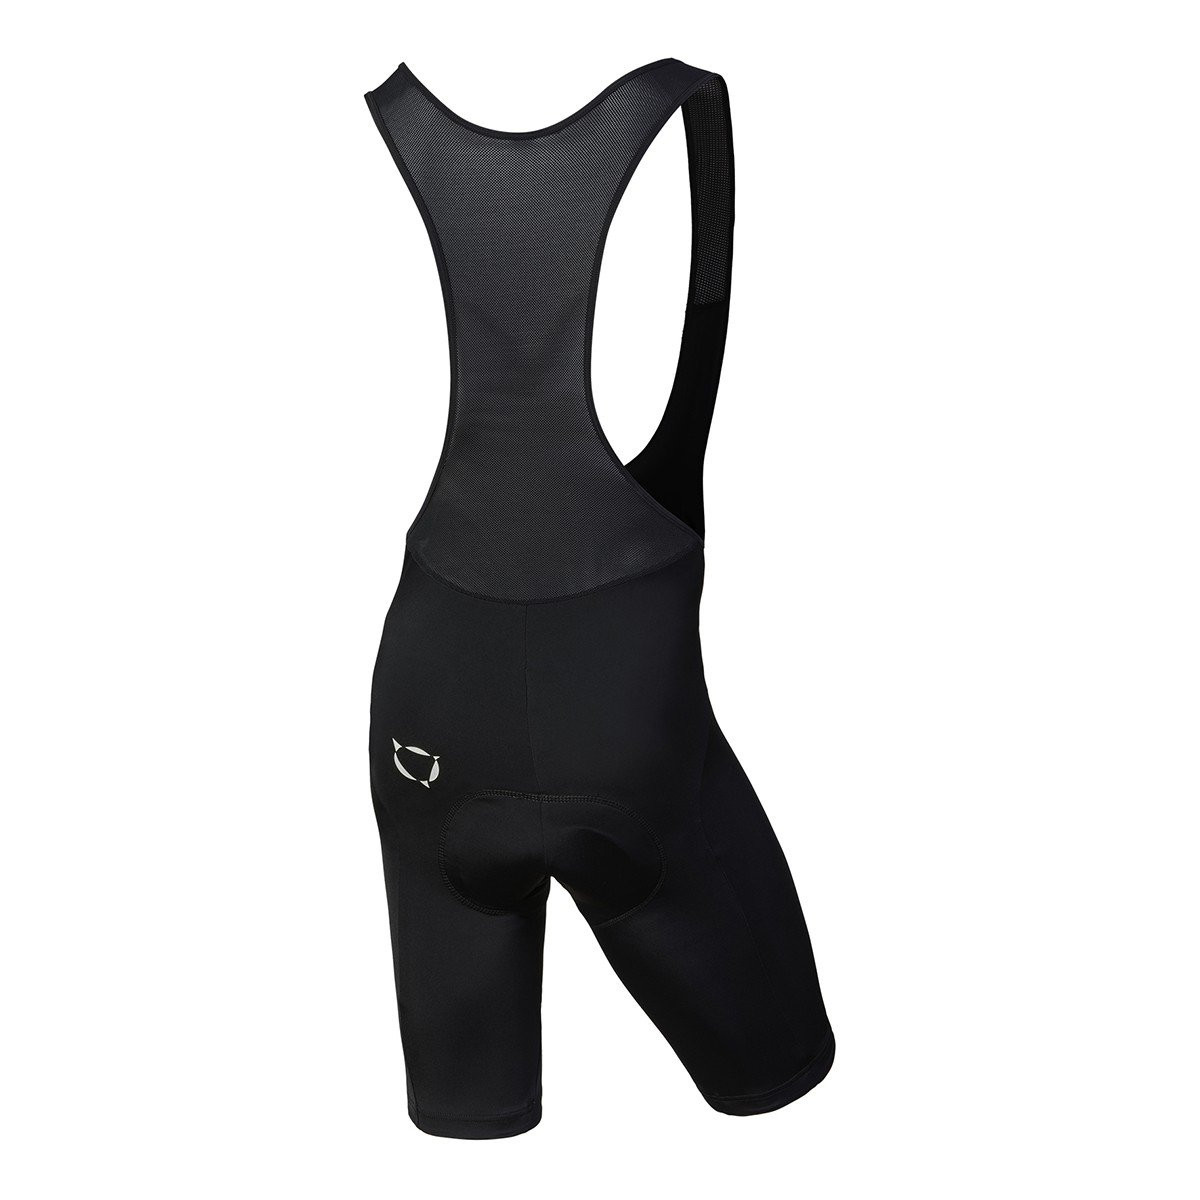 Nalini Squadra Black Bib Shorts Rear